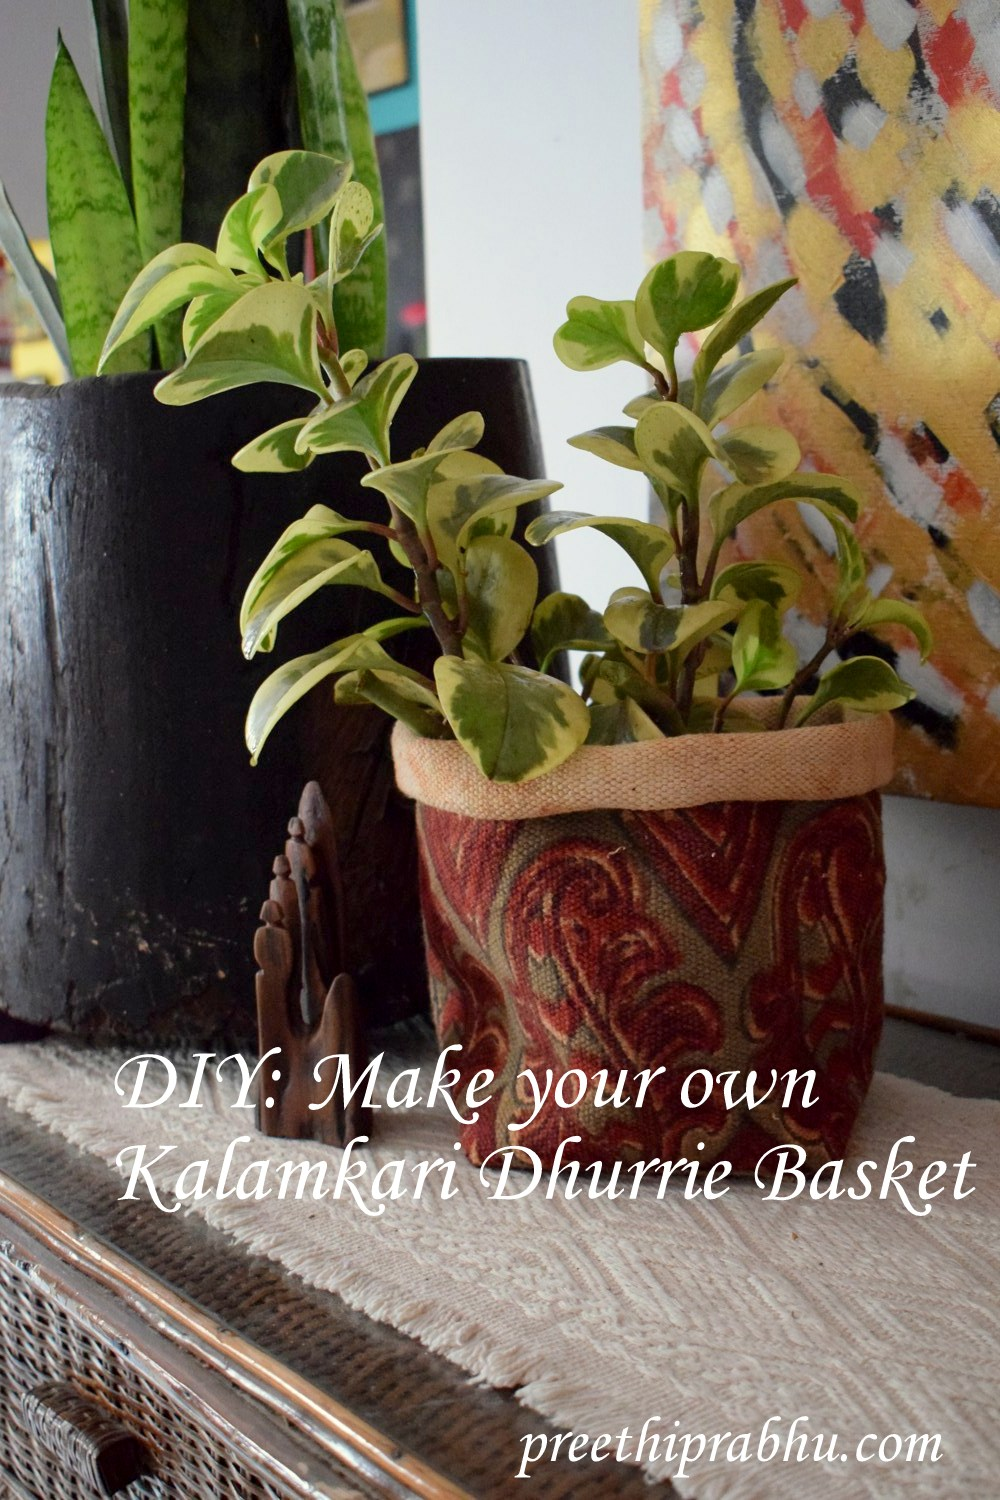 DIY Kalamkari Carpet Planter Basket